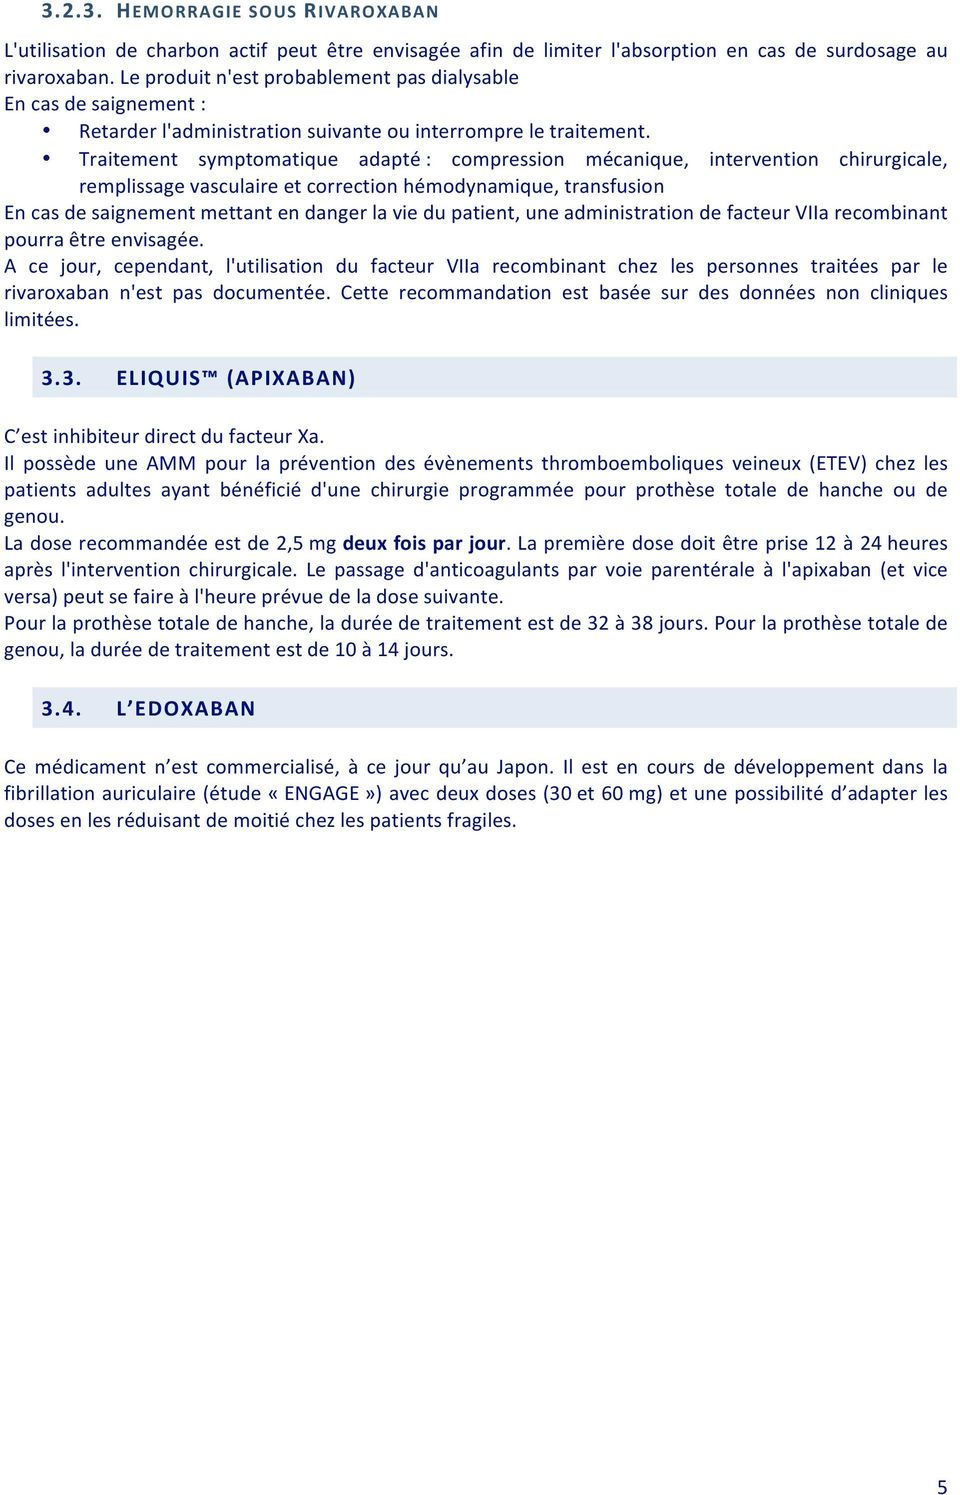 Traitement symptomatique adapté: compression mécanique, intervention chirurgicale, remplissagevasculaireetcorrectionhémodynamique,transfusion